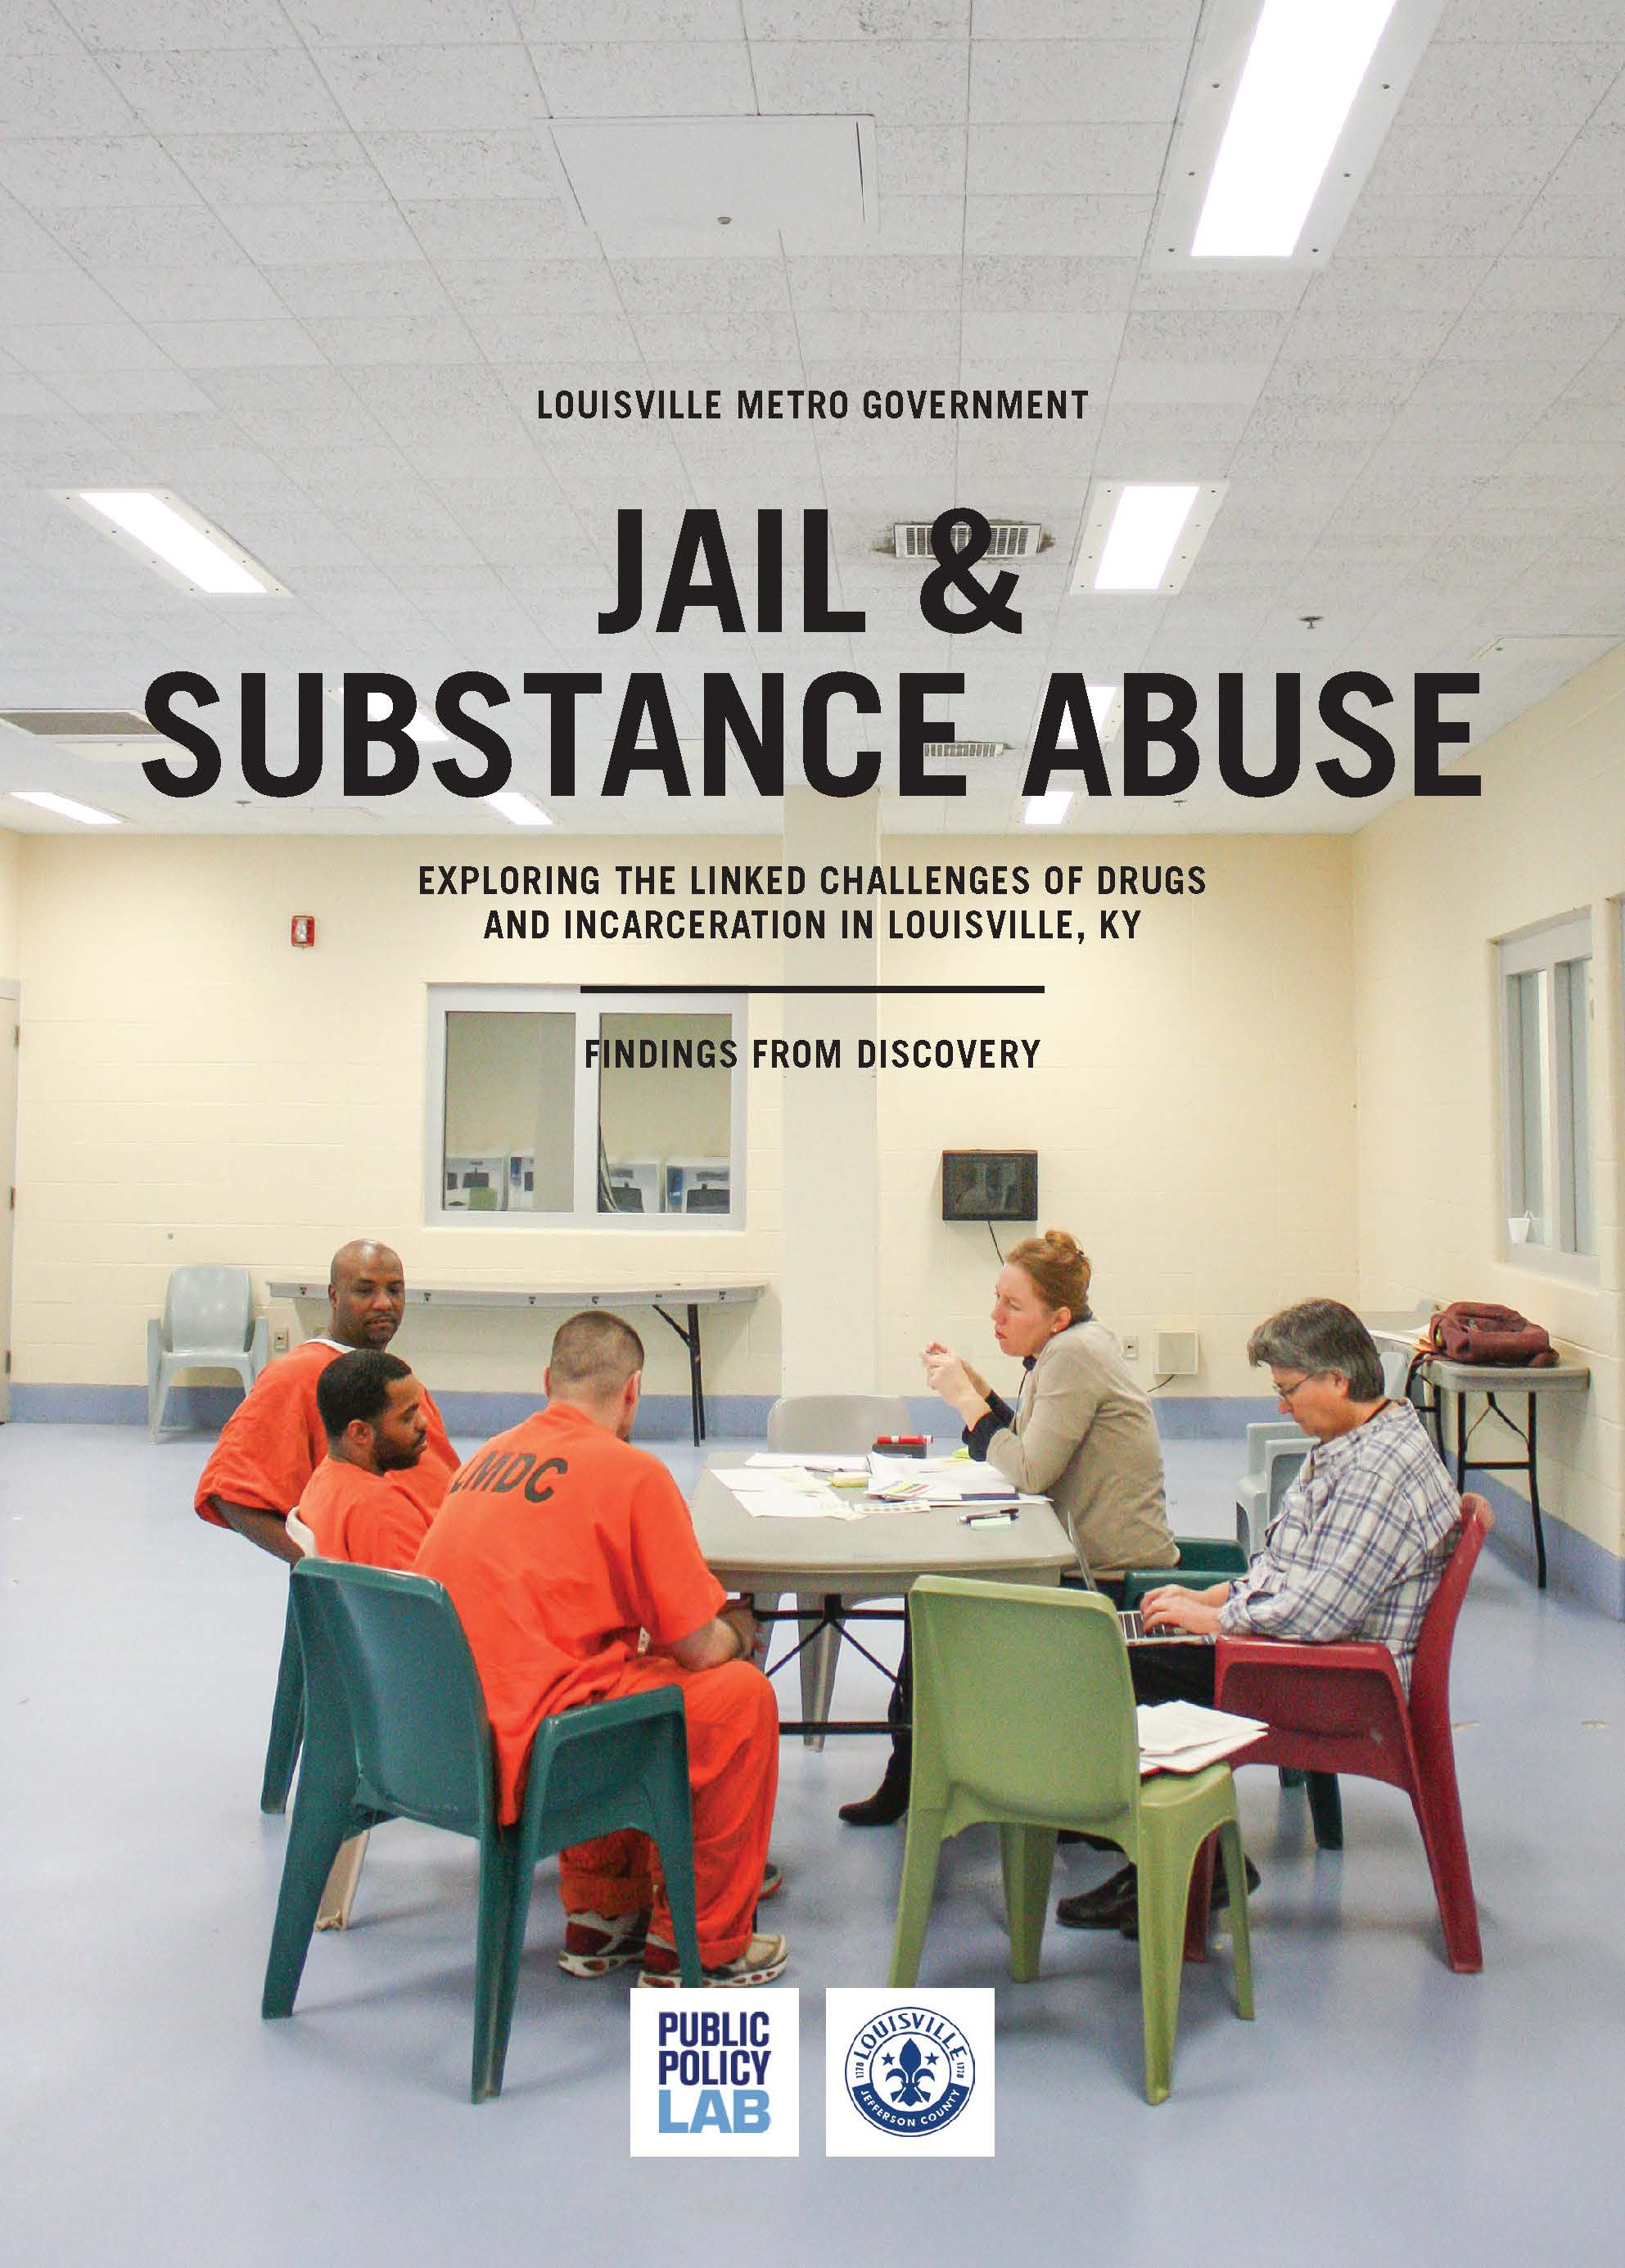 Jail & Substance Abuse